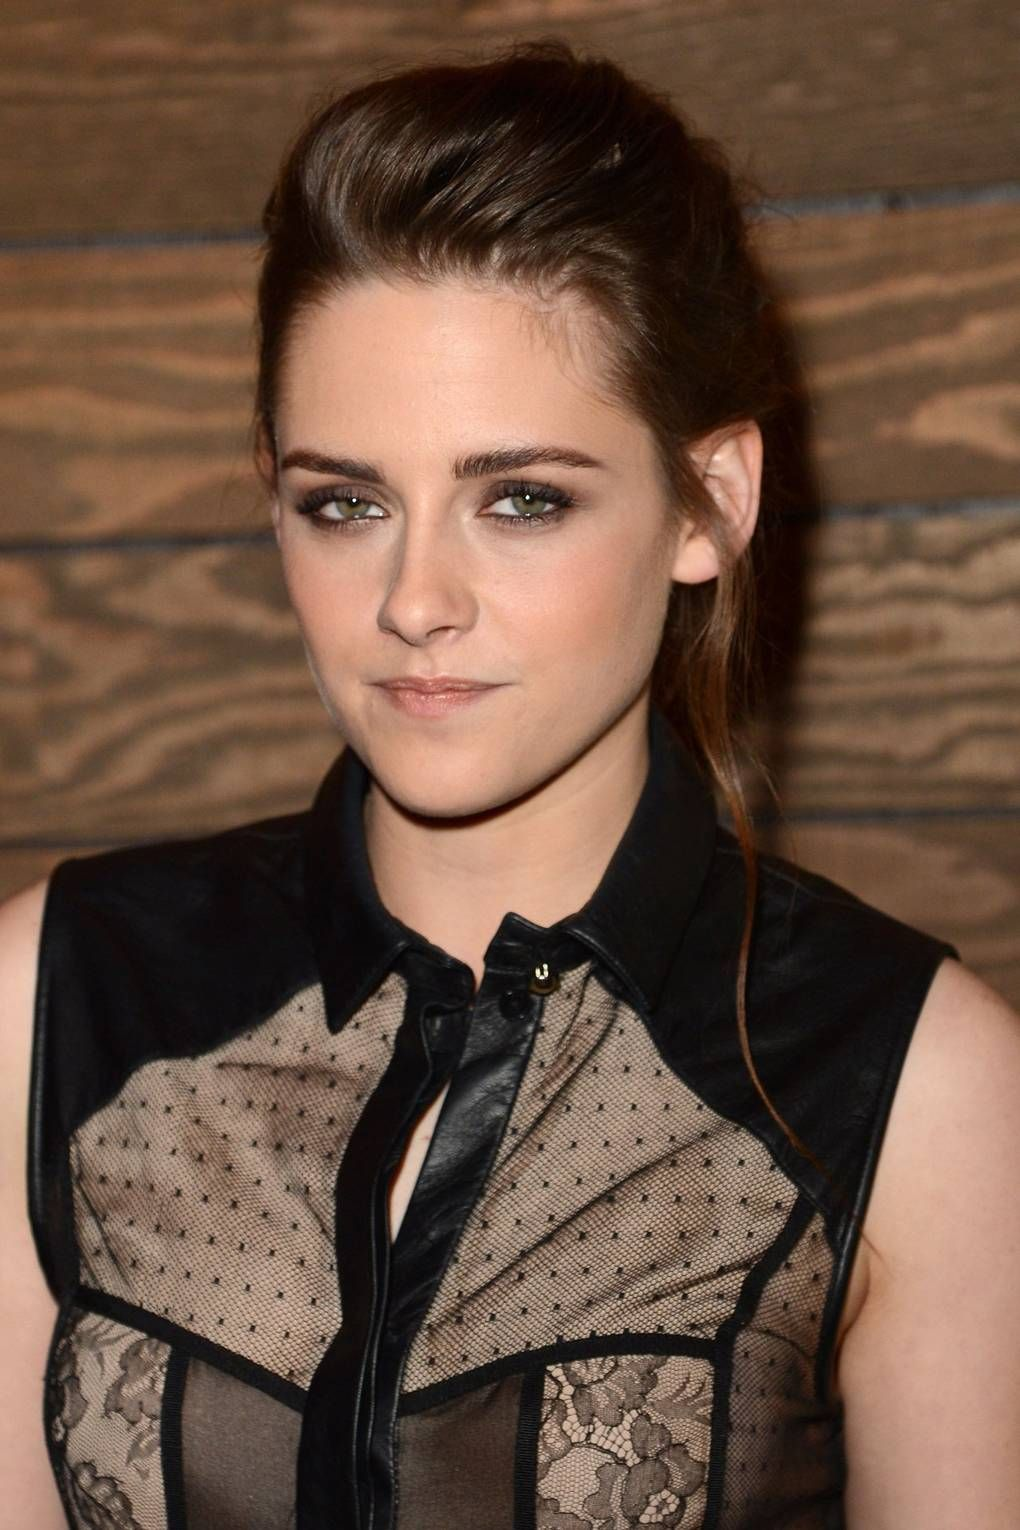 [b]2012[/b] One of our favourite Kristen looks to date: we love her swept-back up-do with pretty loose wave and her well-groomed bold brows. Not mine! Credit to Glamour.